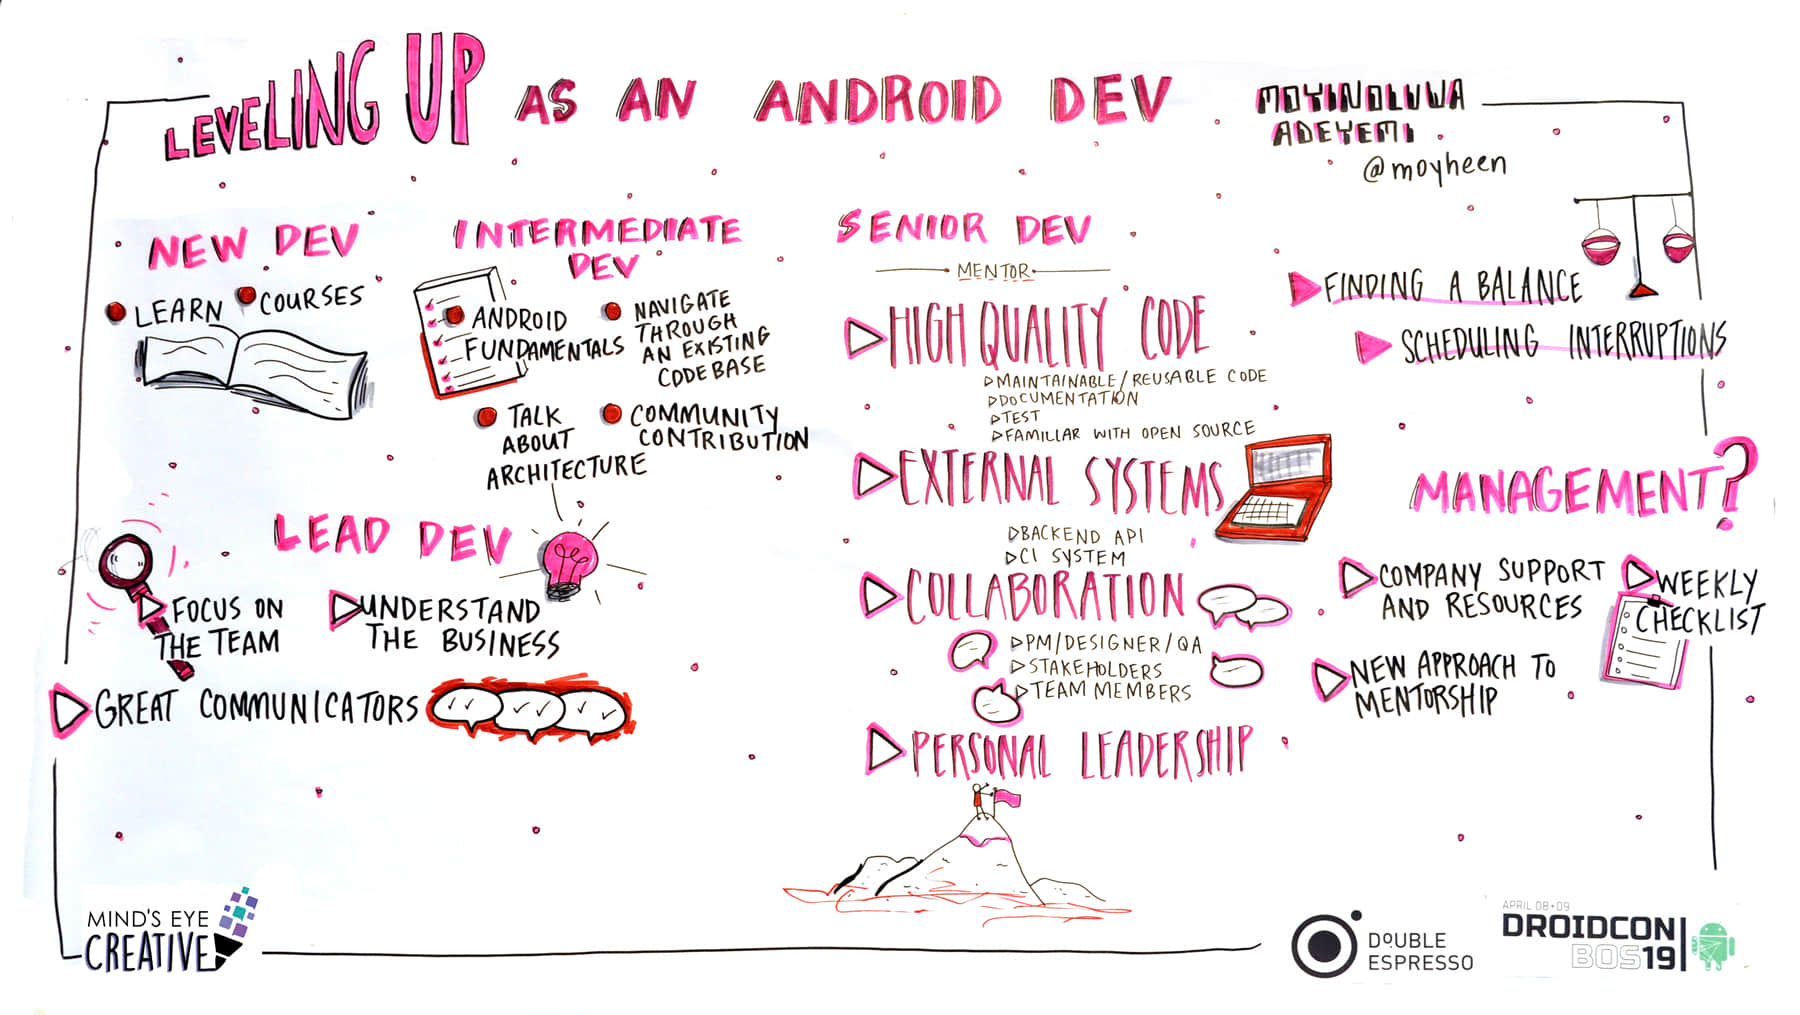 Graphic recording from DroidCon event in 2019